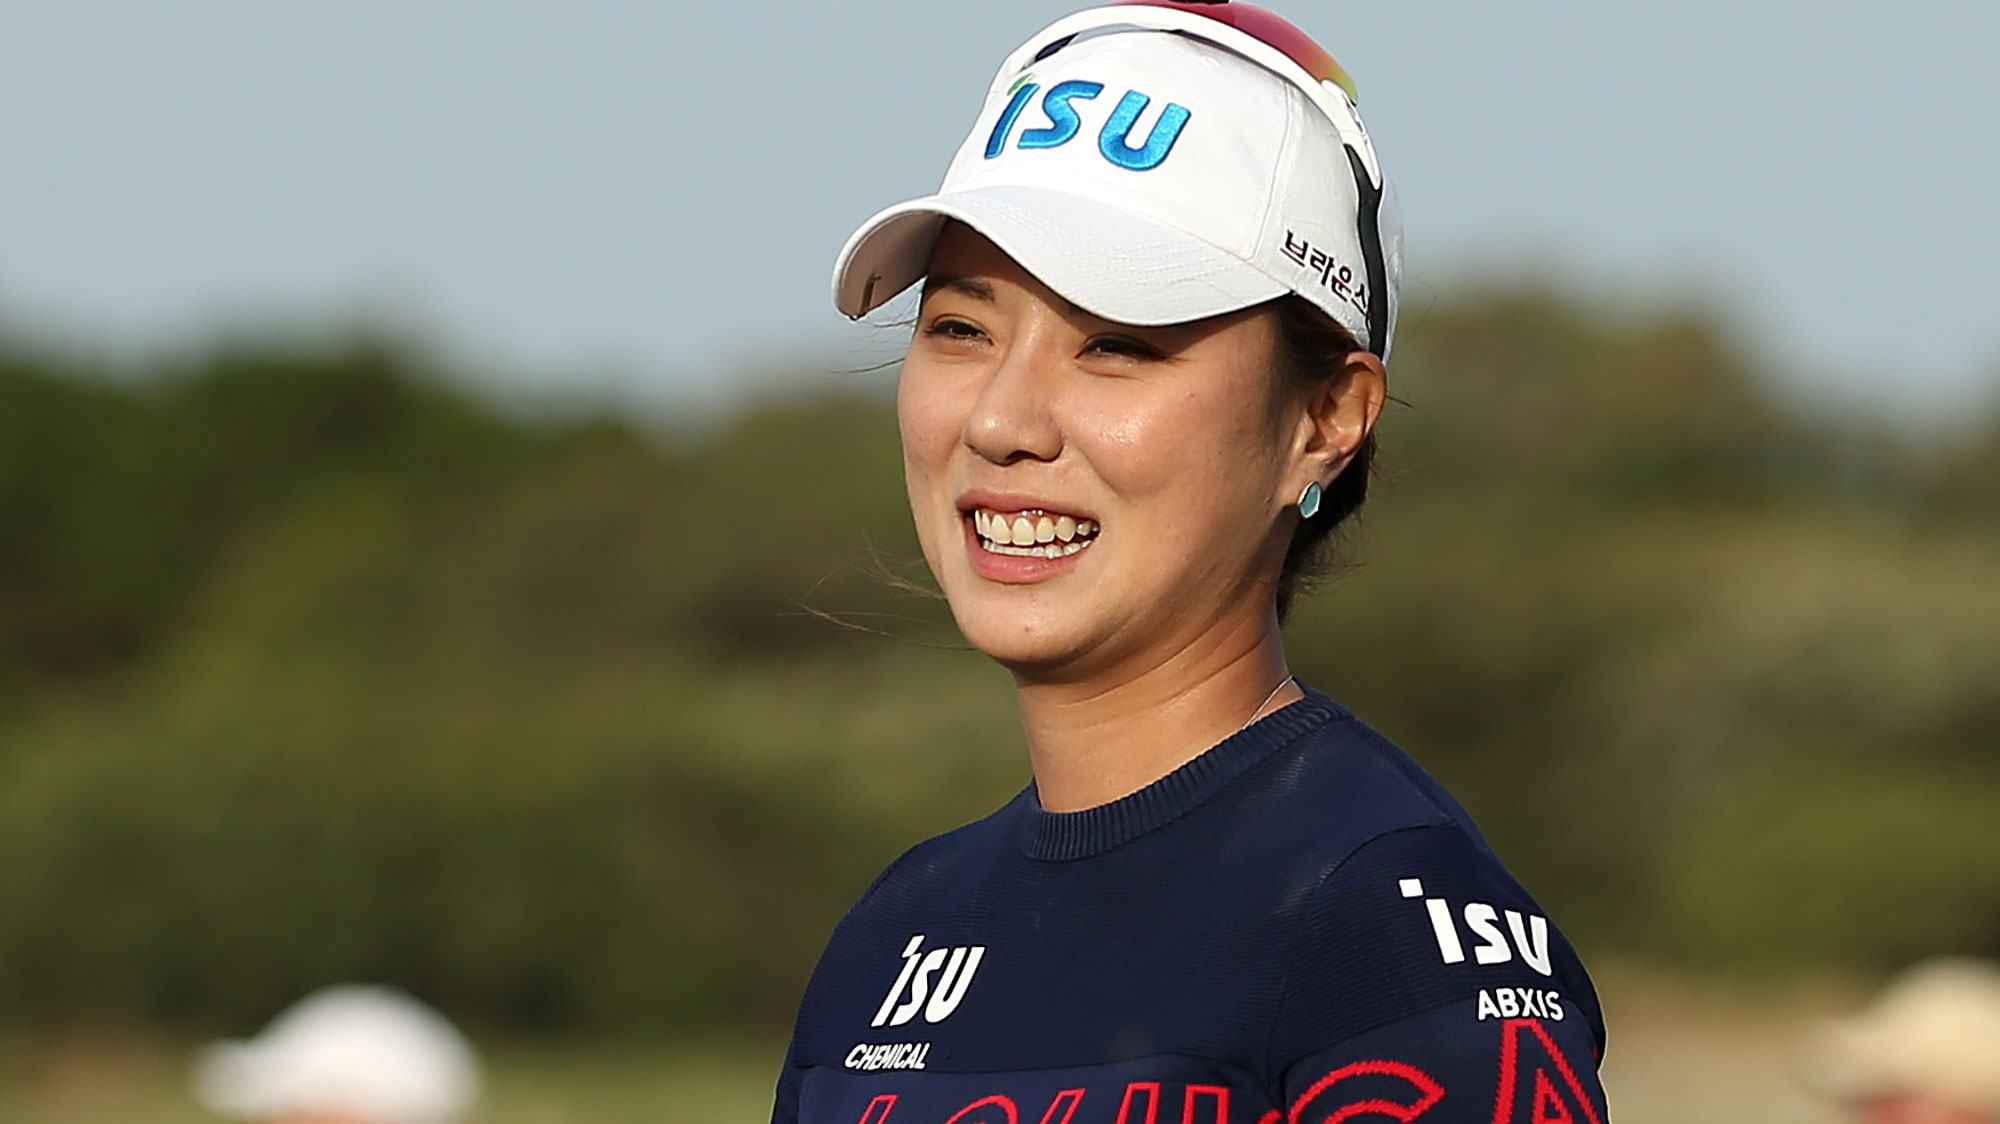 Hee-young Park celebrates winning the ISPS Handa Vic Open